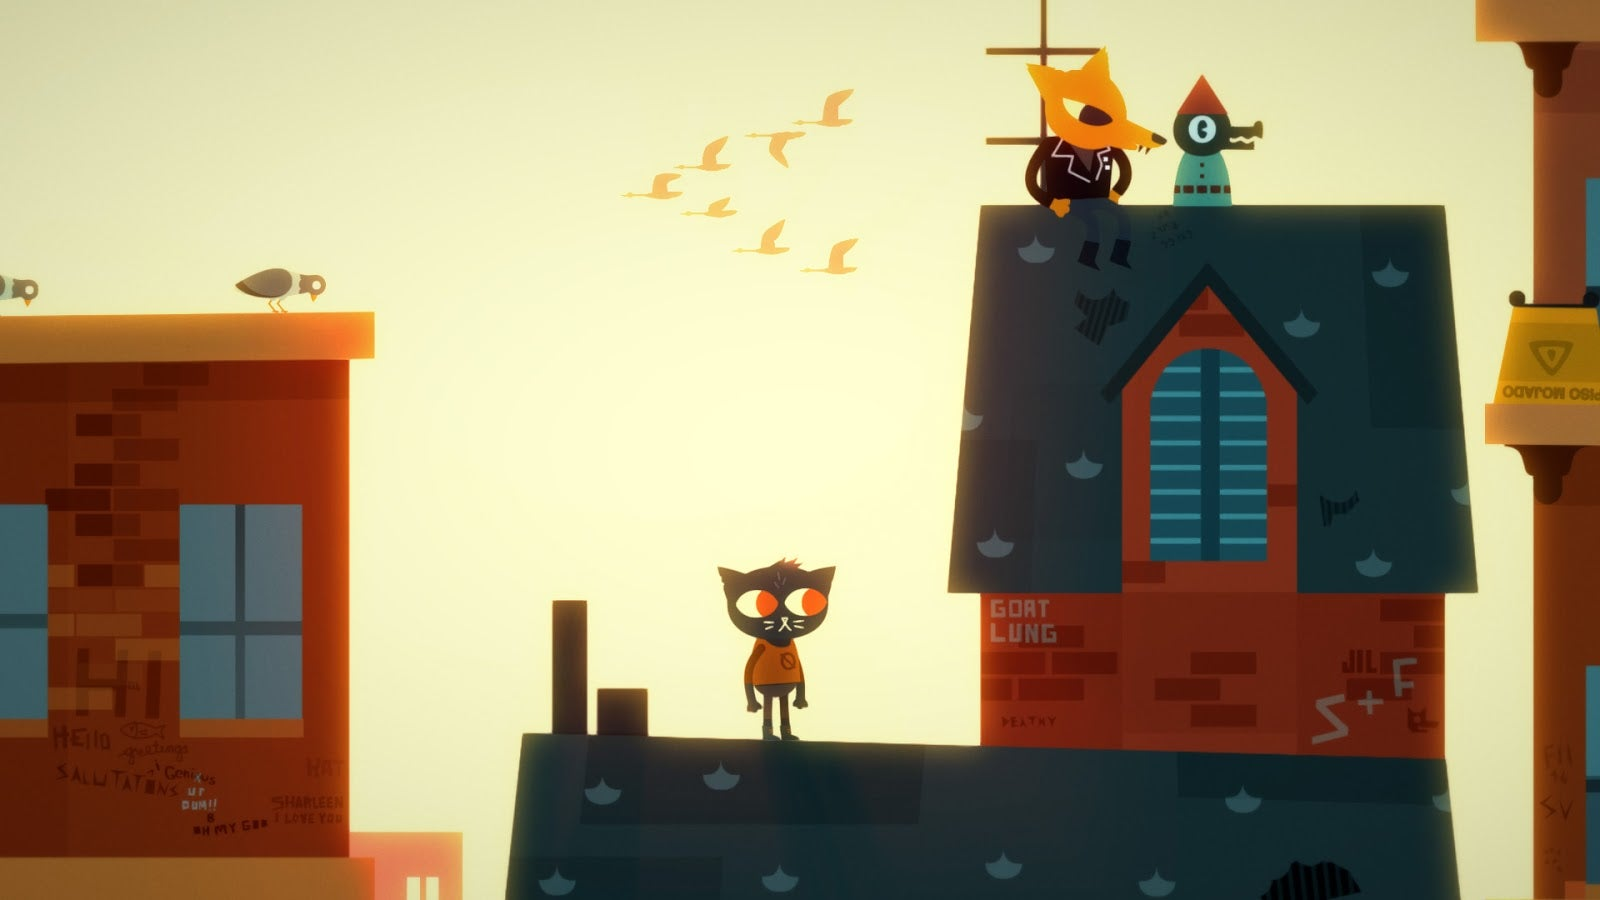 Fan Merch Poses Problems For Indie Developers